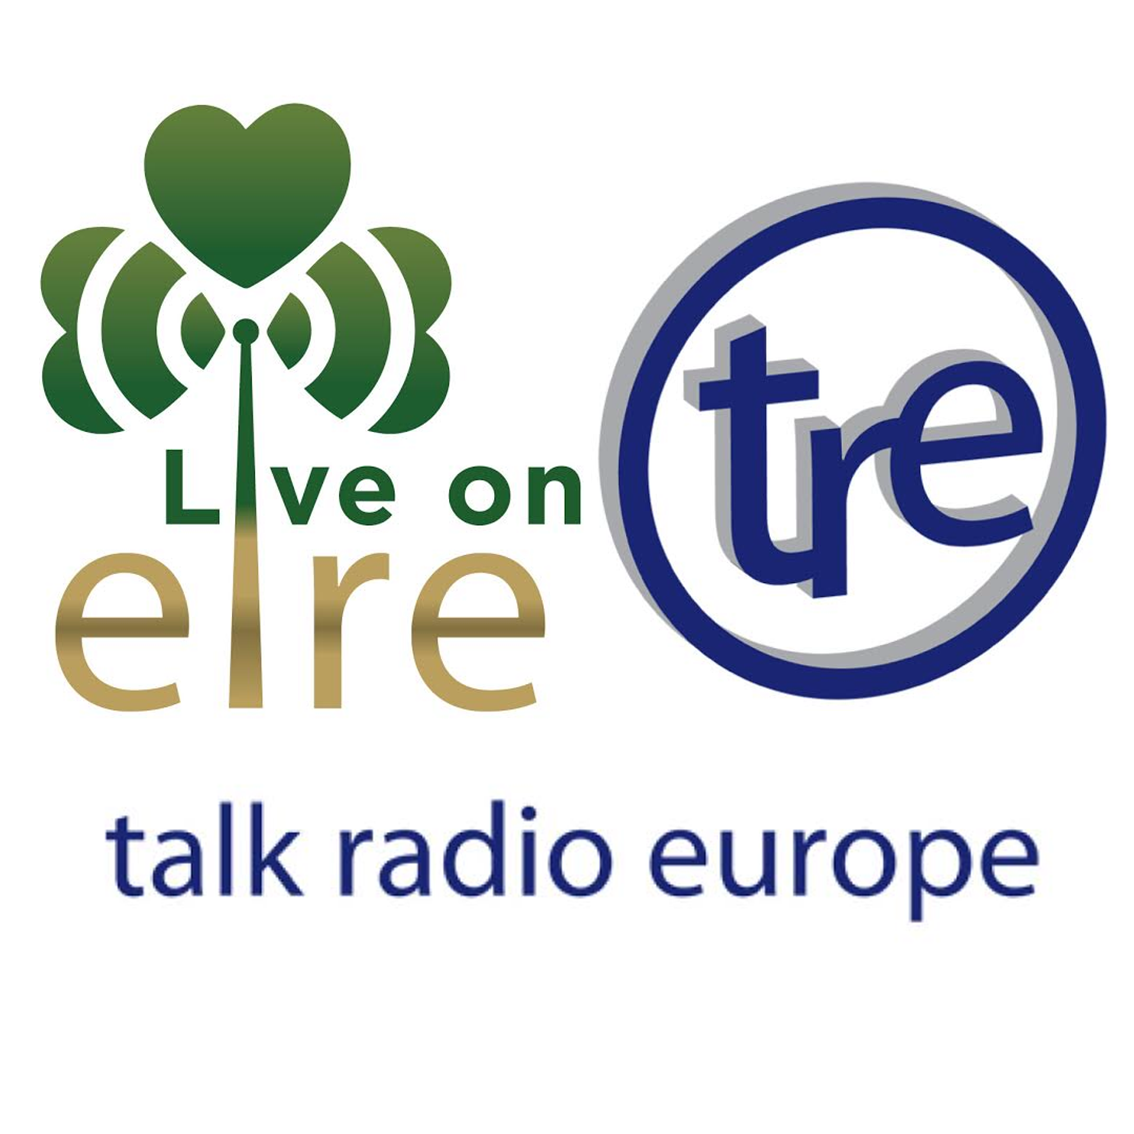 Live on eire